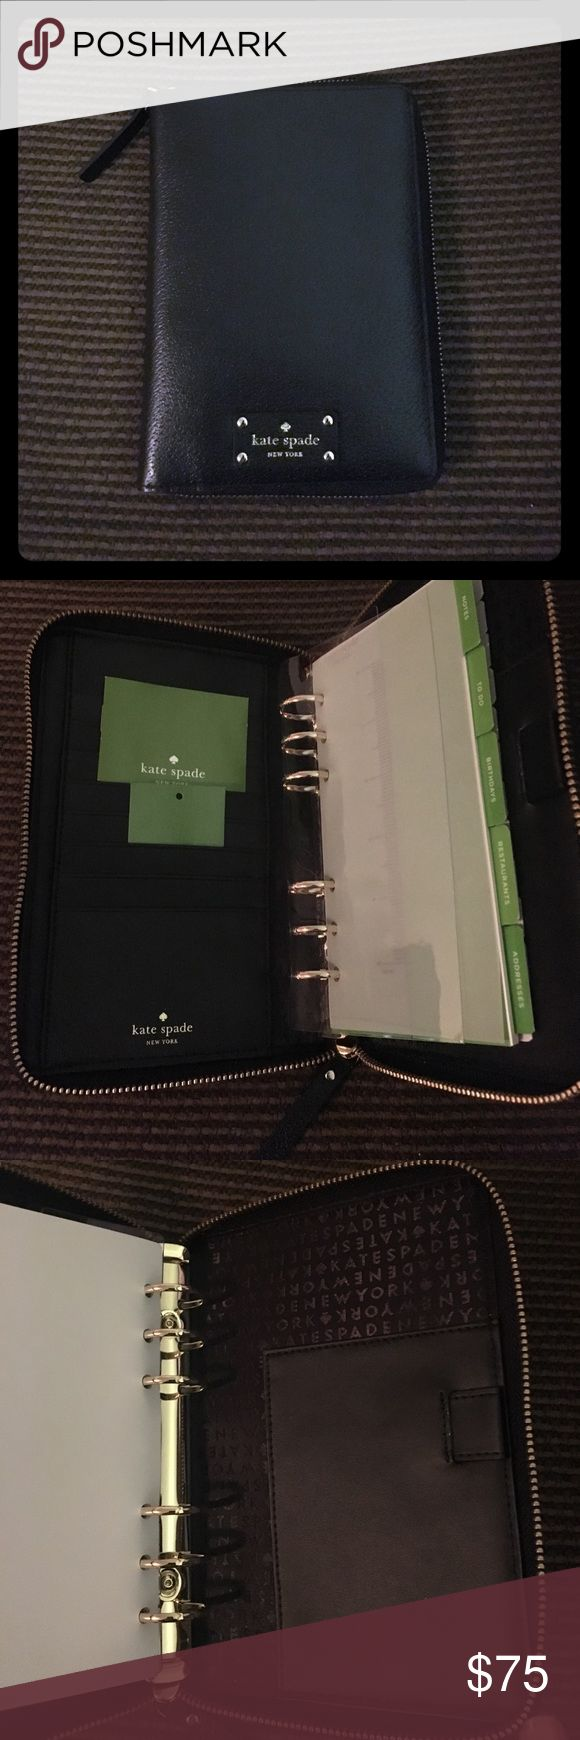 """NWT-Kate Spade zip around Wellesley agenda new. NWT-Kate Spade zip around personal organizer black leather. Brand New. It includes everything shown in the photos above, no calendar but online or amazon has the 2018 already. :)         Measurements:5.5""""L x 7.75""""H x 1.5""""W.   Made of leather. Zip around closure with leather pull. Inside multifunction slip pockets, 8 card slots and 1 pen slot.  Fabric lining. Gold tone hardware. kate spade Accessories"""